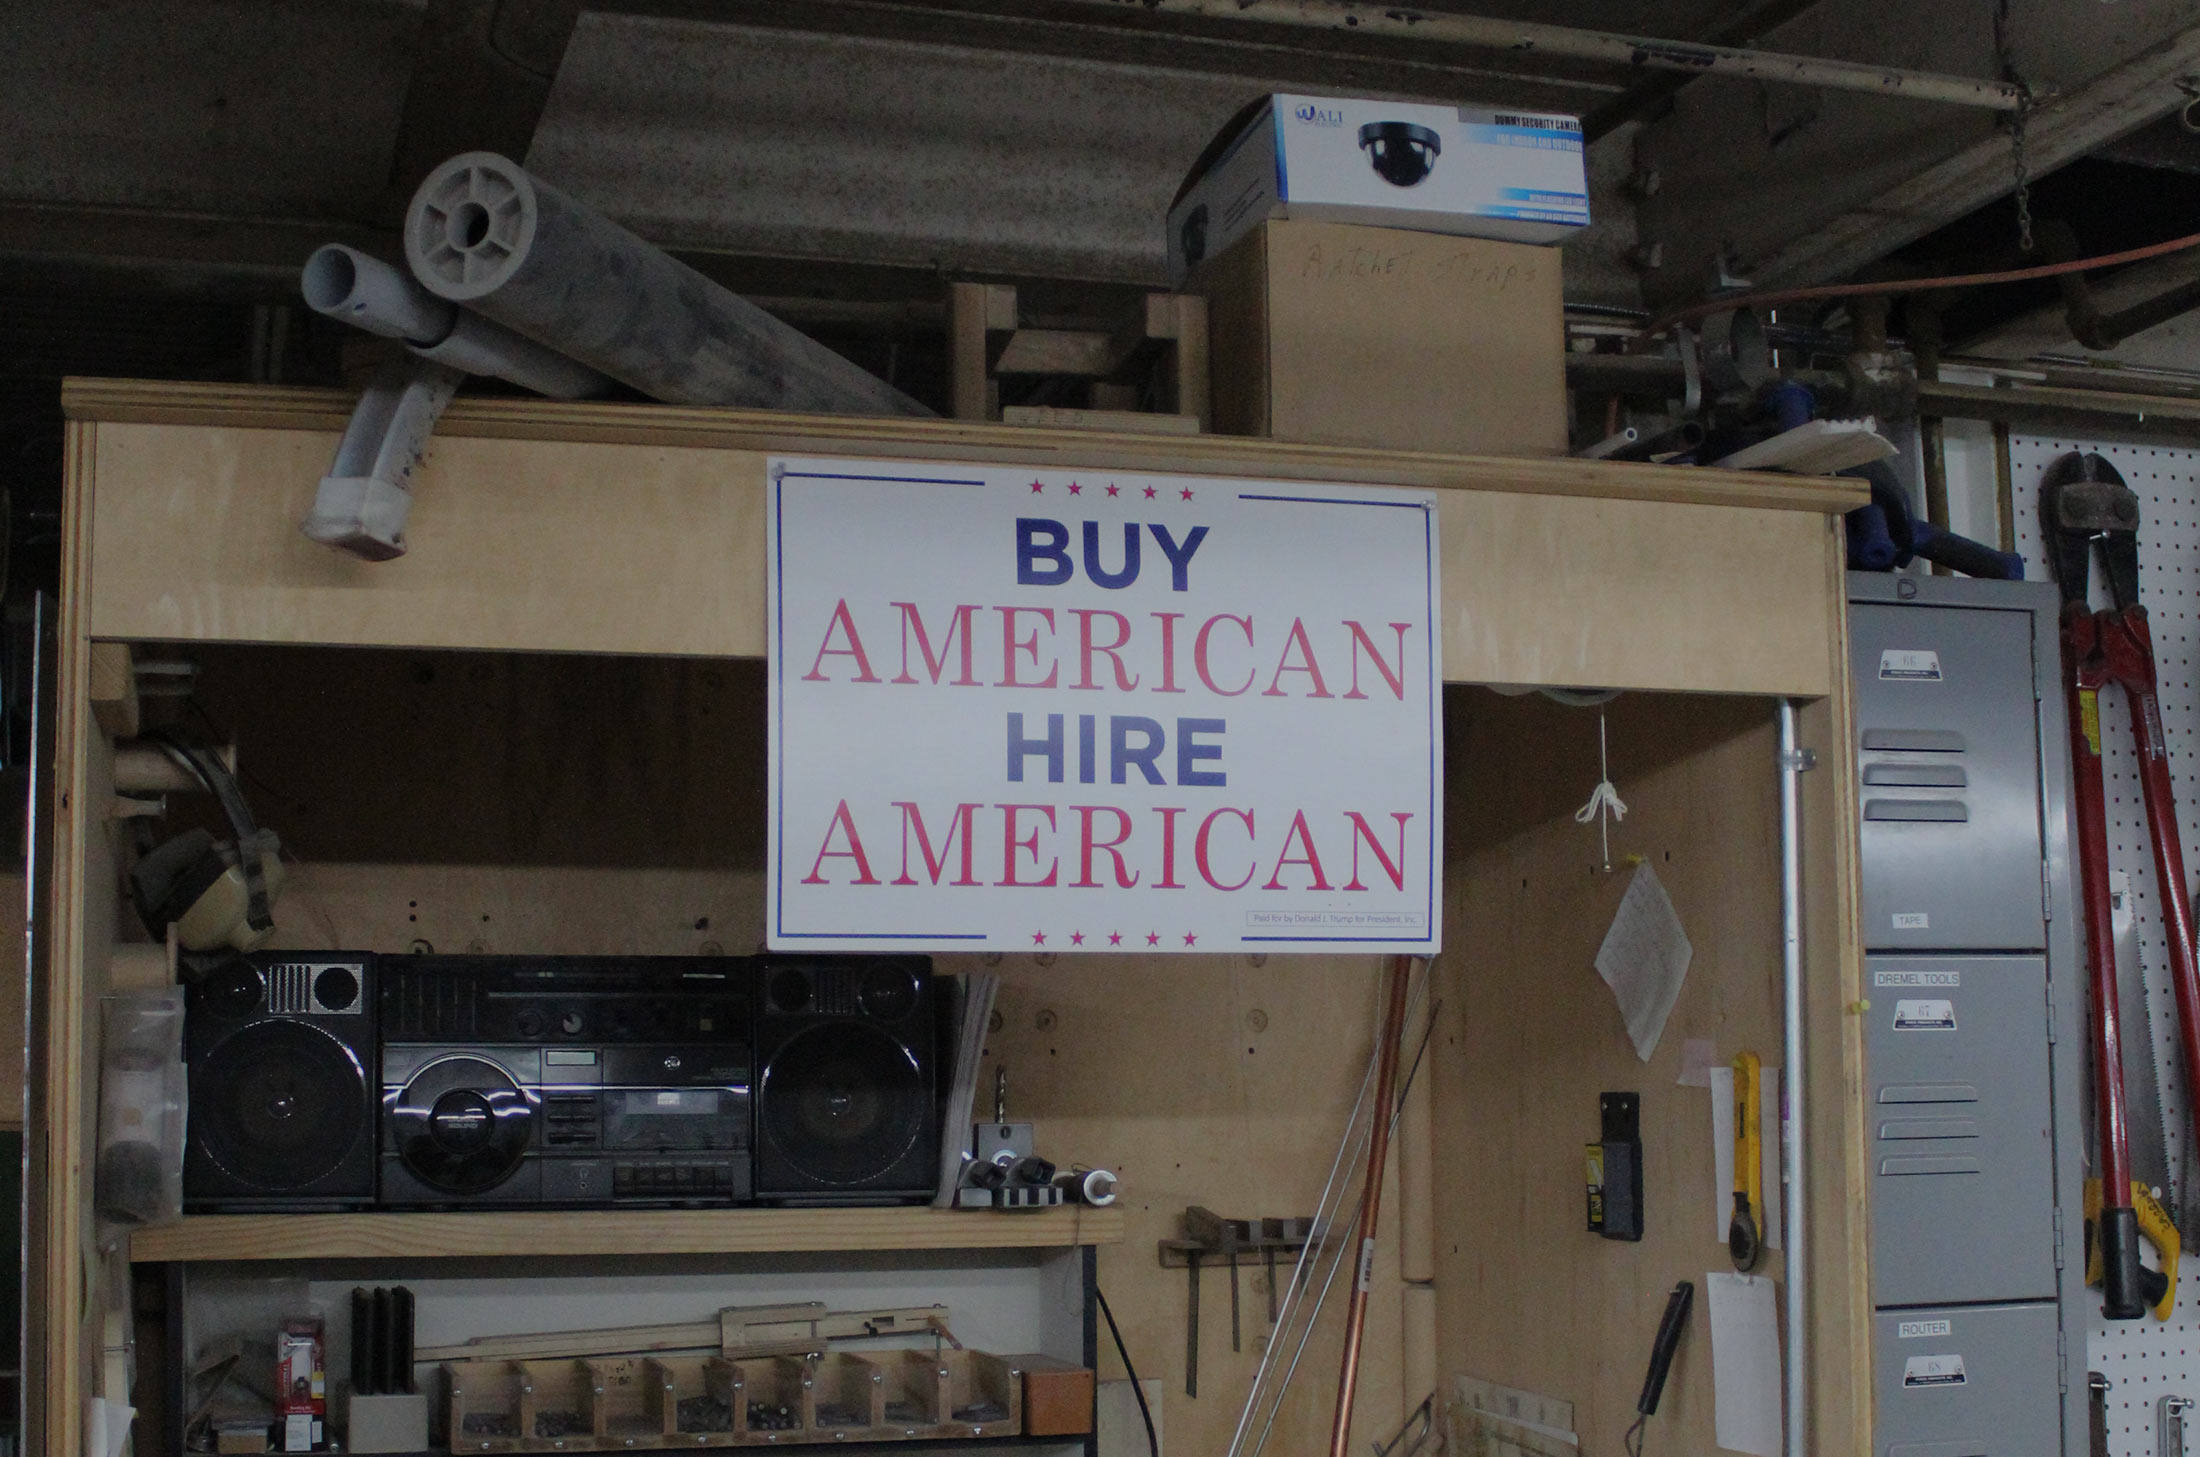 Made In America and Nimble,Carrom Caters To Retailer Needs